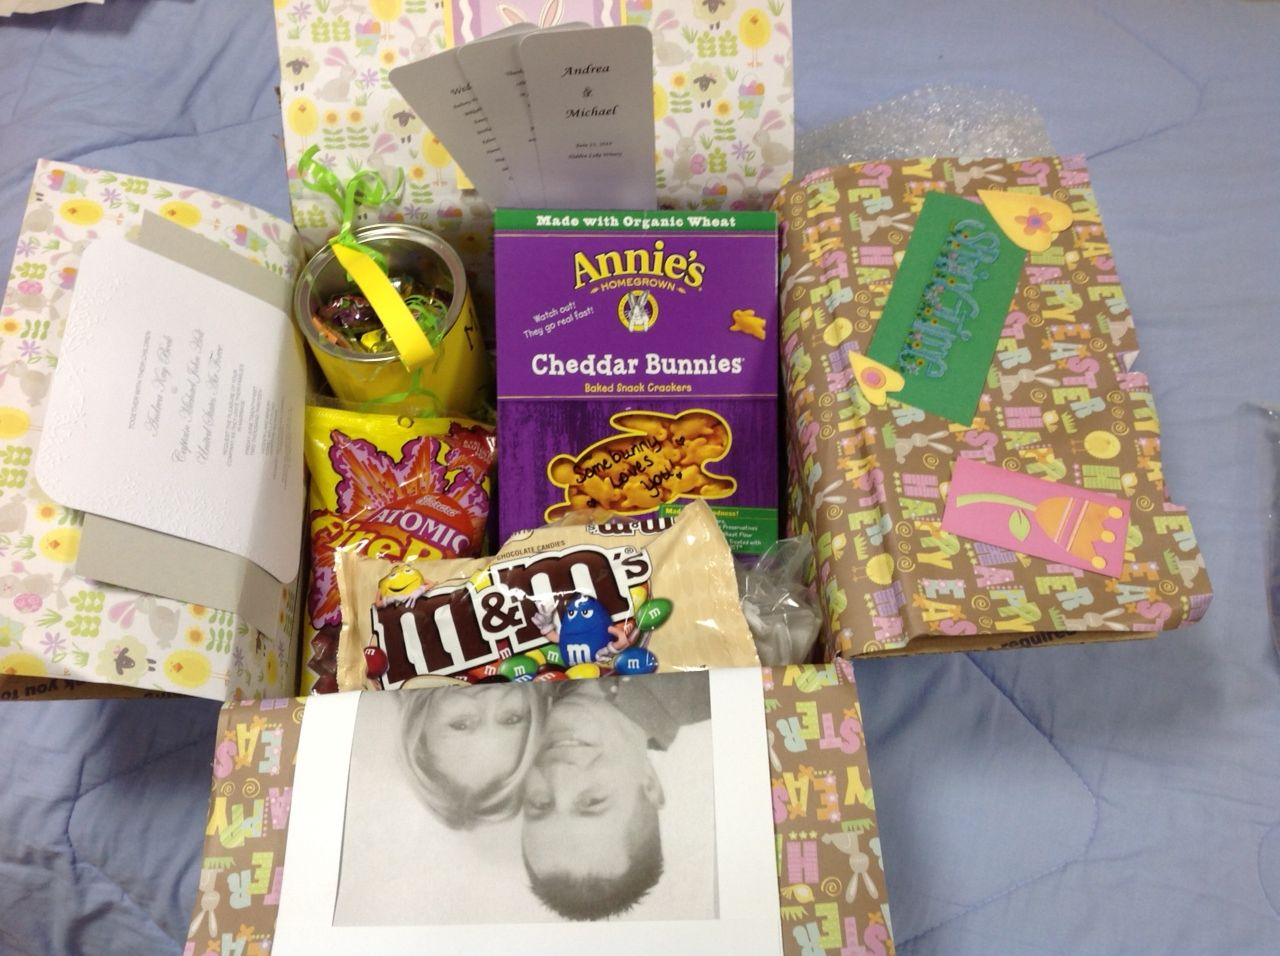 Easter care package for deployment care packages pinterest easter care package for deployment negle Image collections